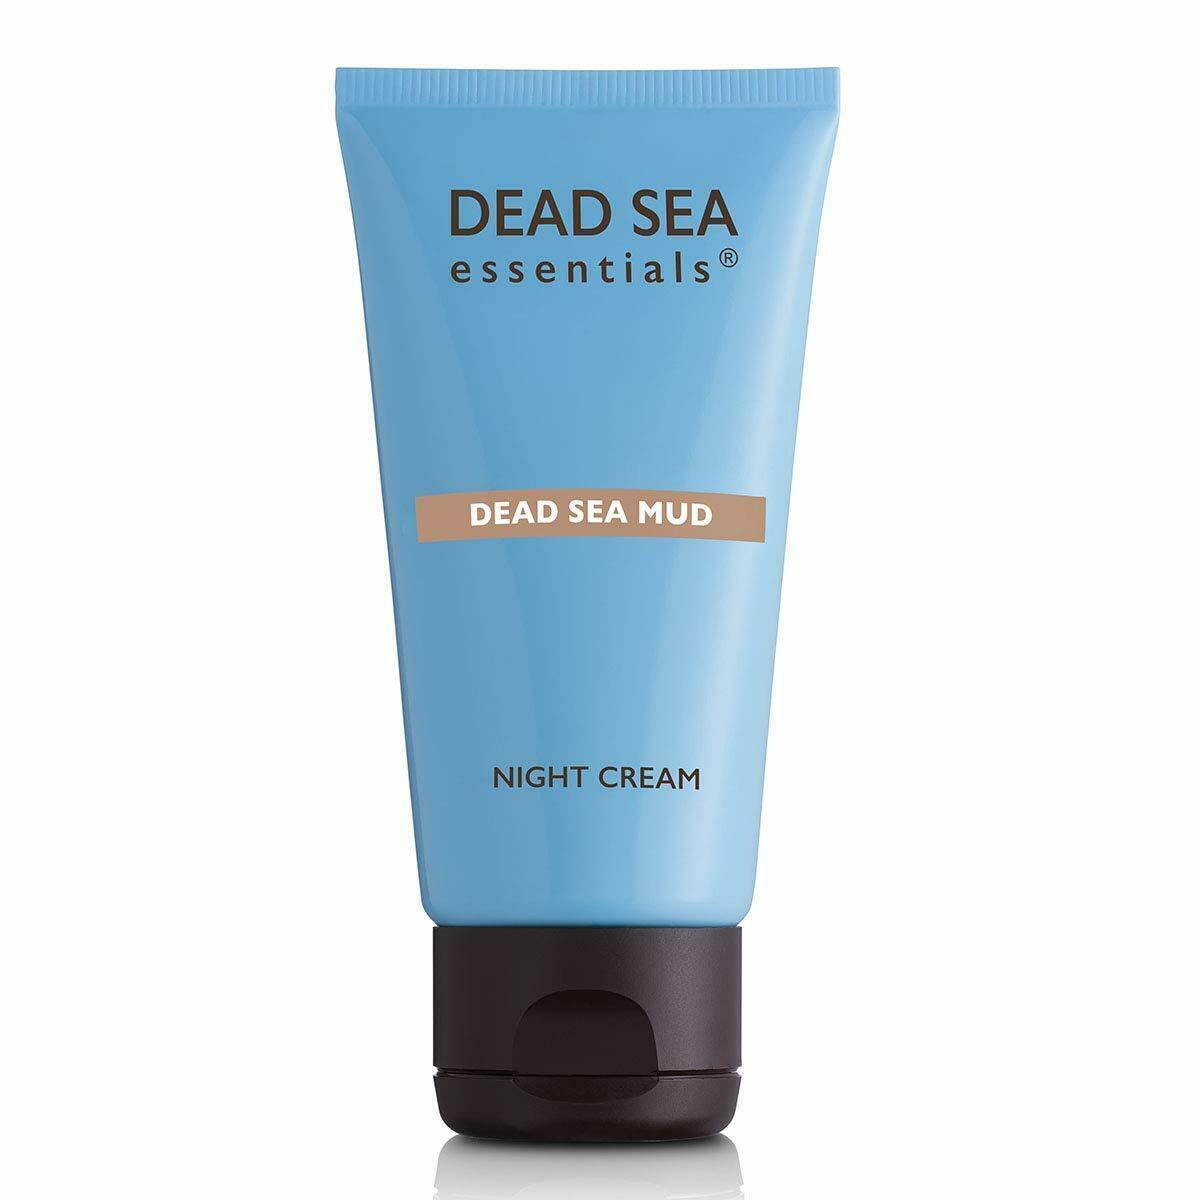 Ahava Dead Sea Essentials Mud Night Cream Hydrating Moisturizing Dry Skin 1.7oz - $19.95